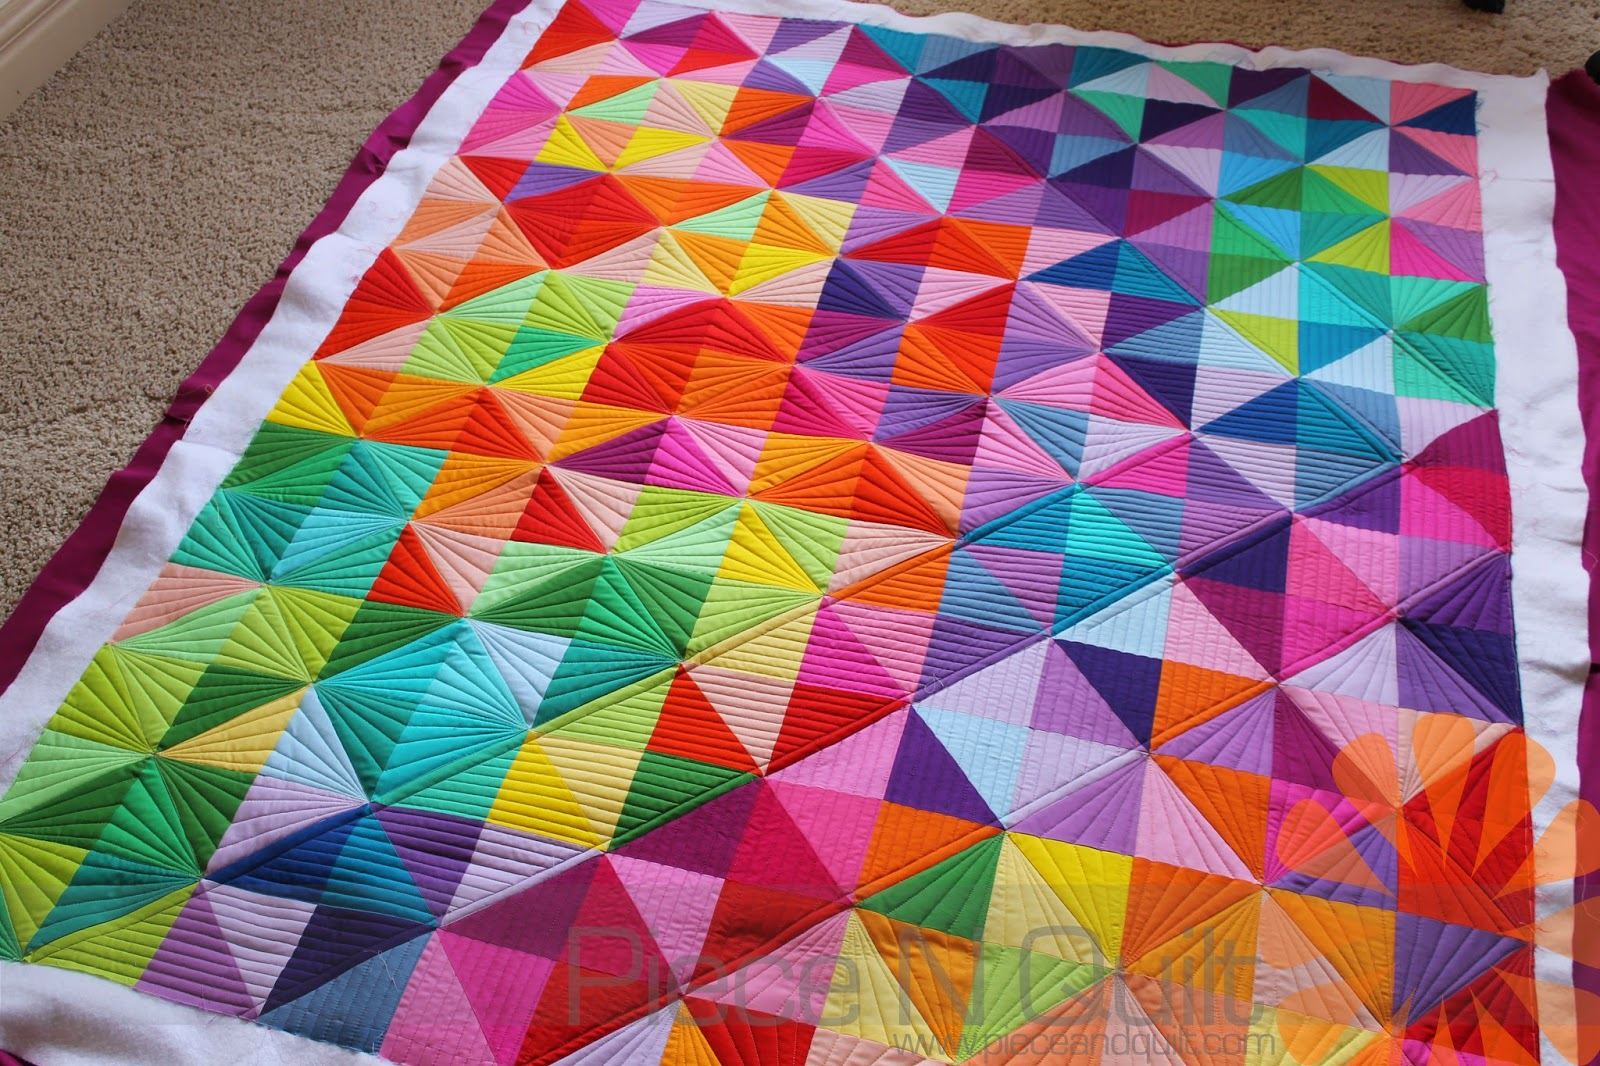 Piece N Quilt: Half Square Triangle Quilt - Custom Machine ... : half square triangle quilt - Adamdwight.com